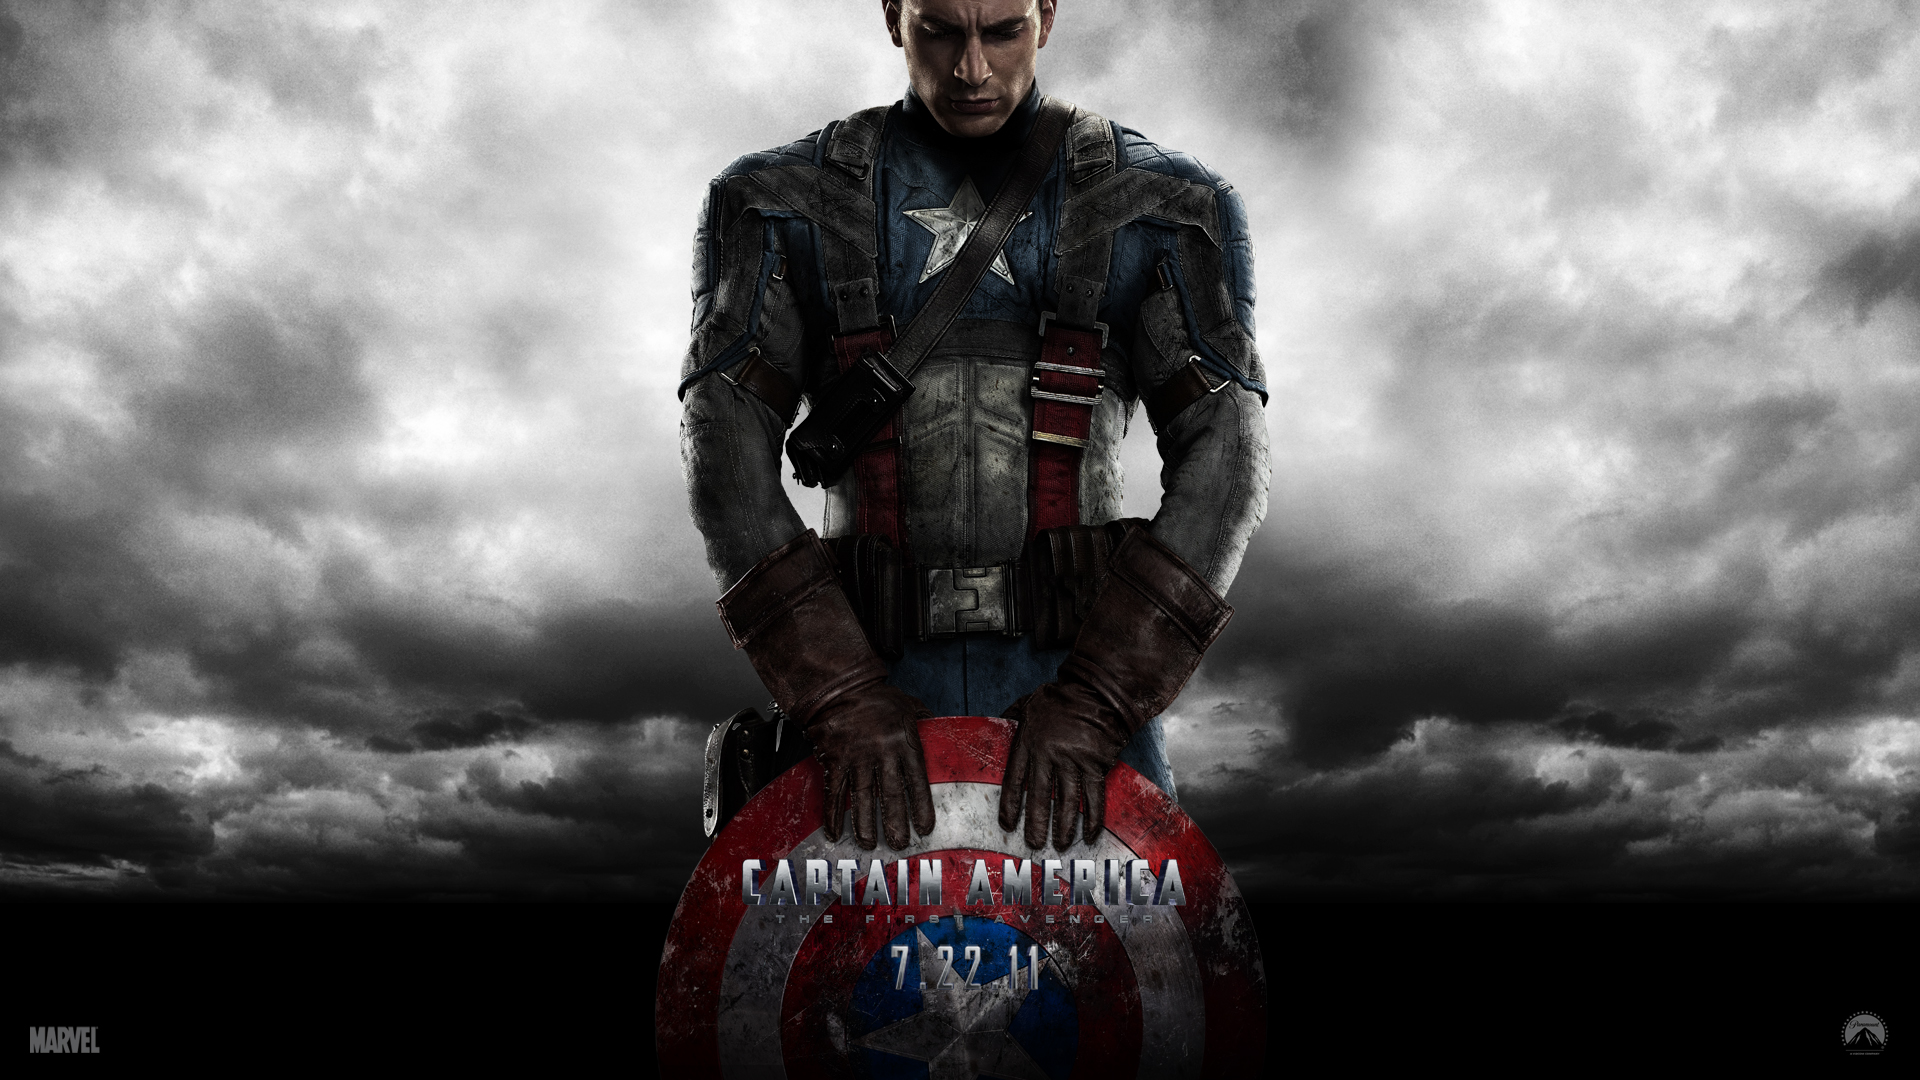 Wallpapers Collection: «Captain America Wallpapers» 1920x1080